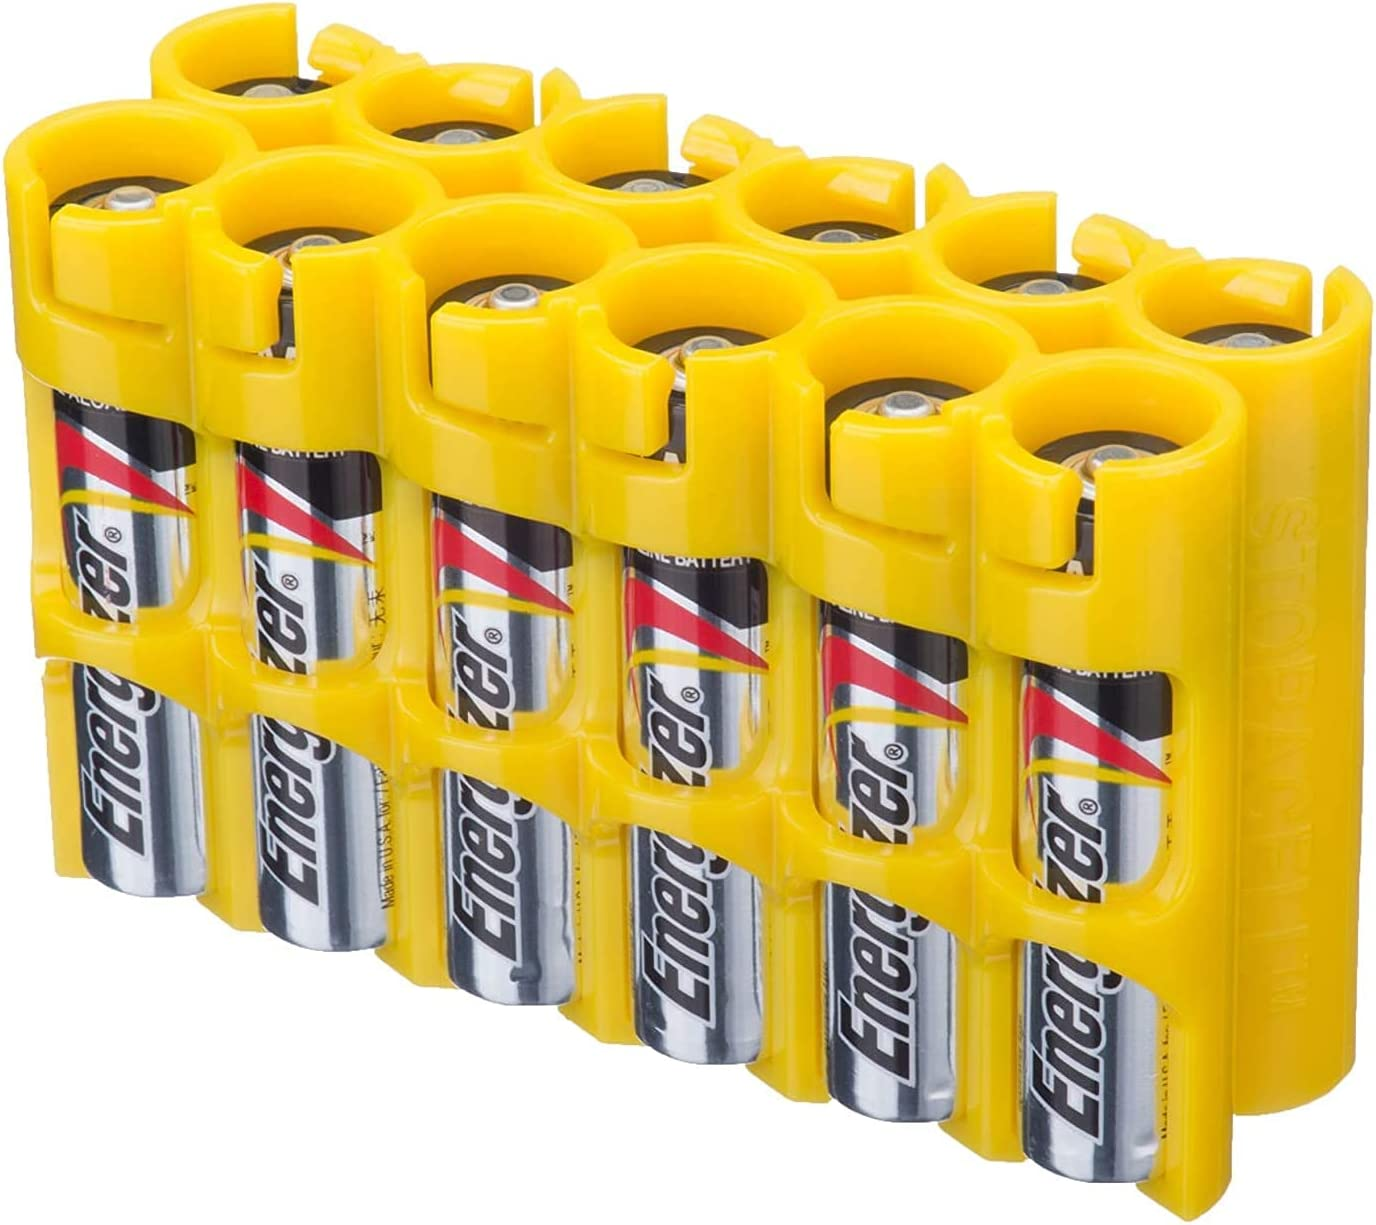 Storacell AAA12pkCY AAA Battery Caddy, Yellow, Holds 12 AAA Batteries (2 Pack)